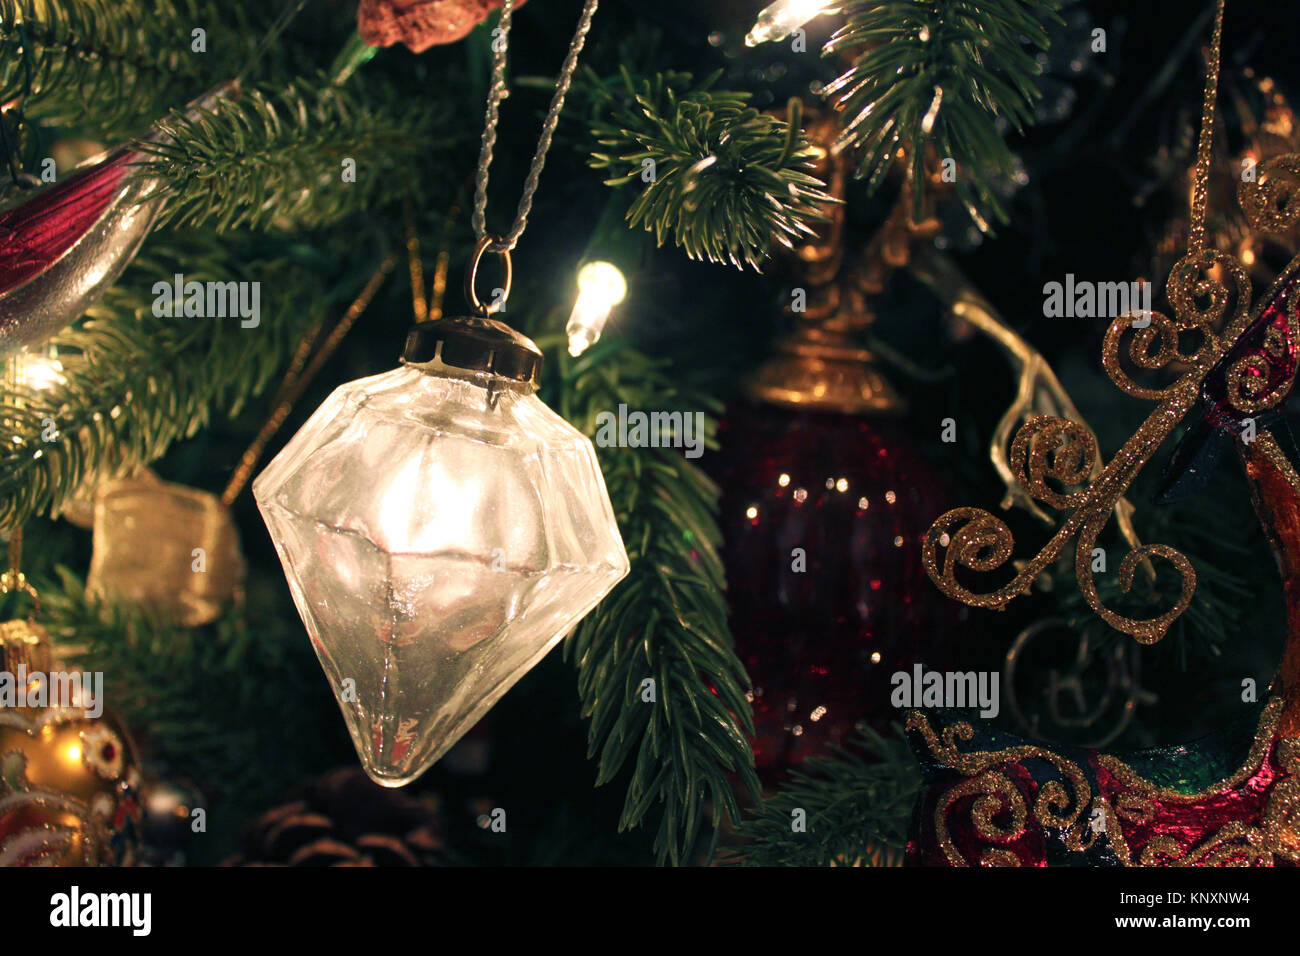 Old Fashioned Christmas Tree Ornament Stock Photos & Old Fashioned ...